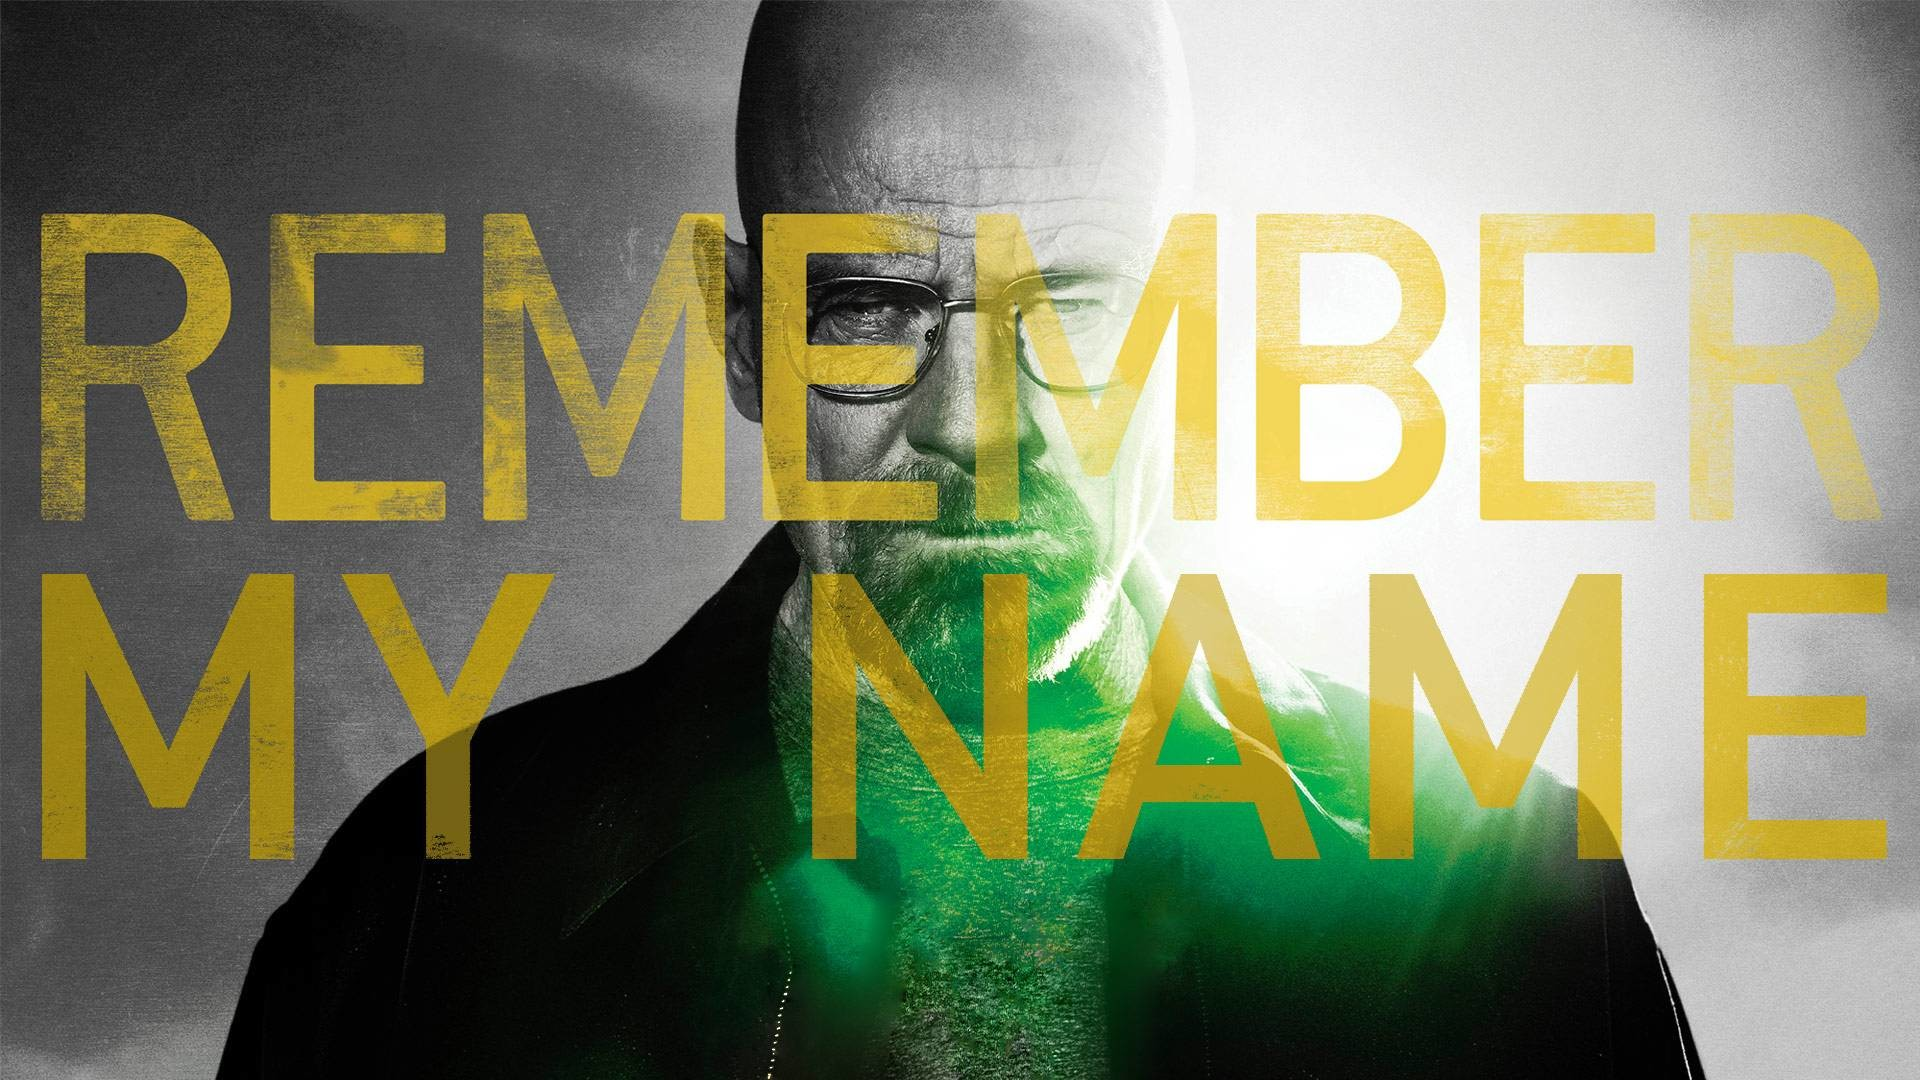 Reddit Quotes Wallpaper Breaking Bad Wallpaper All Hail The King 62 Images